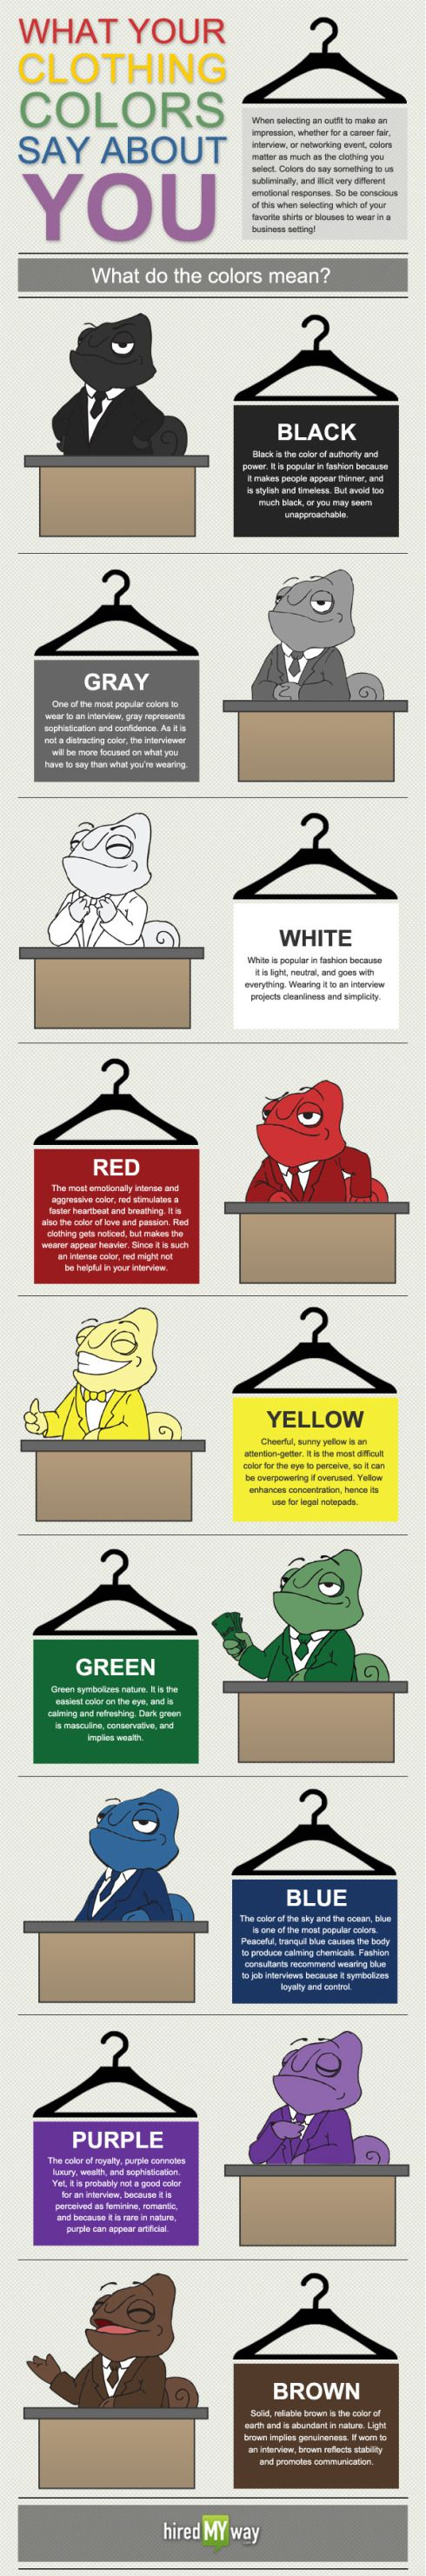 What clothing color says about you...dress to impress for an interview.